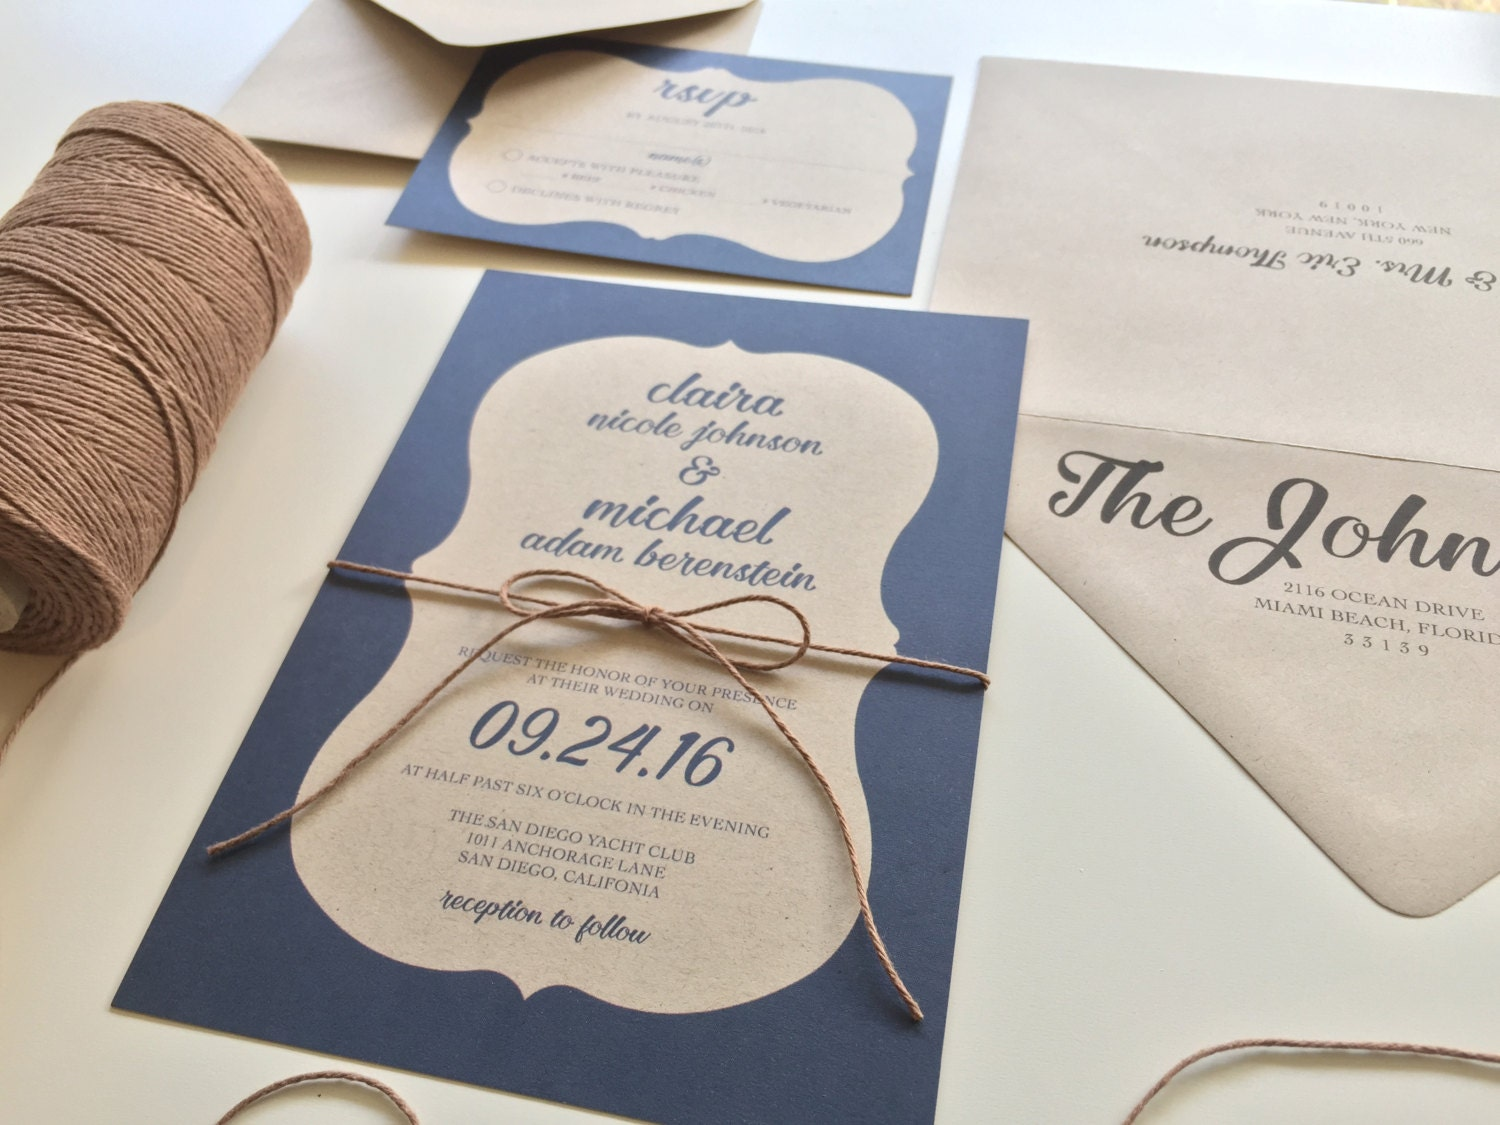 This rustic kraft paper wedding invitation has an ornate blue border and is tied sweetly with twine. The invitation is shown on 100% recycled kraft paper and co